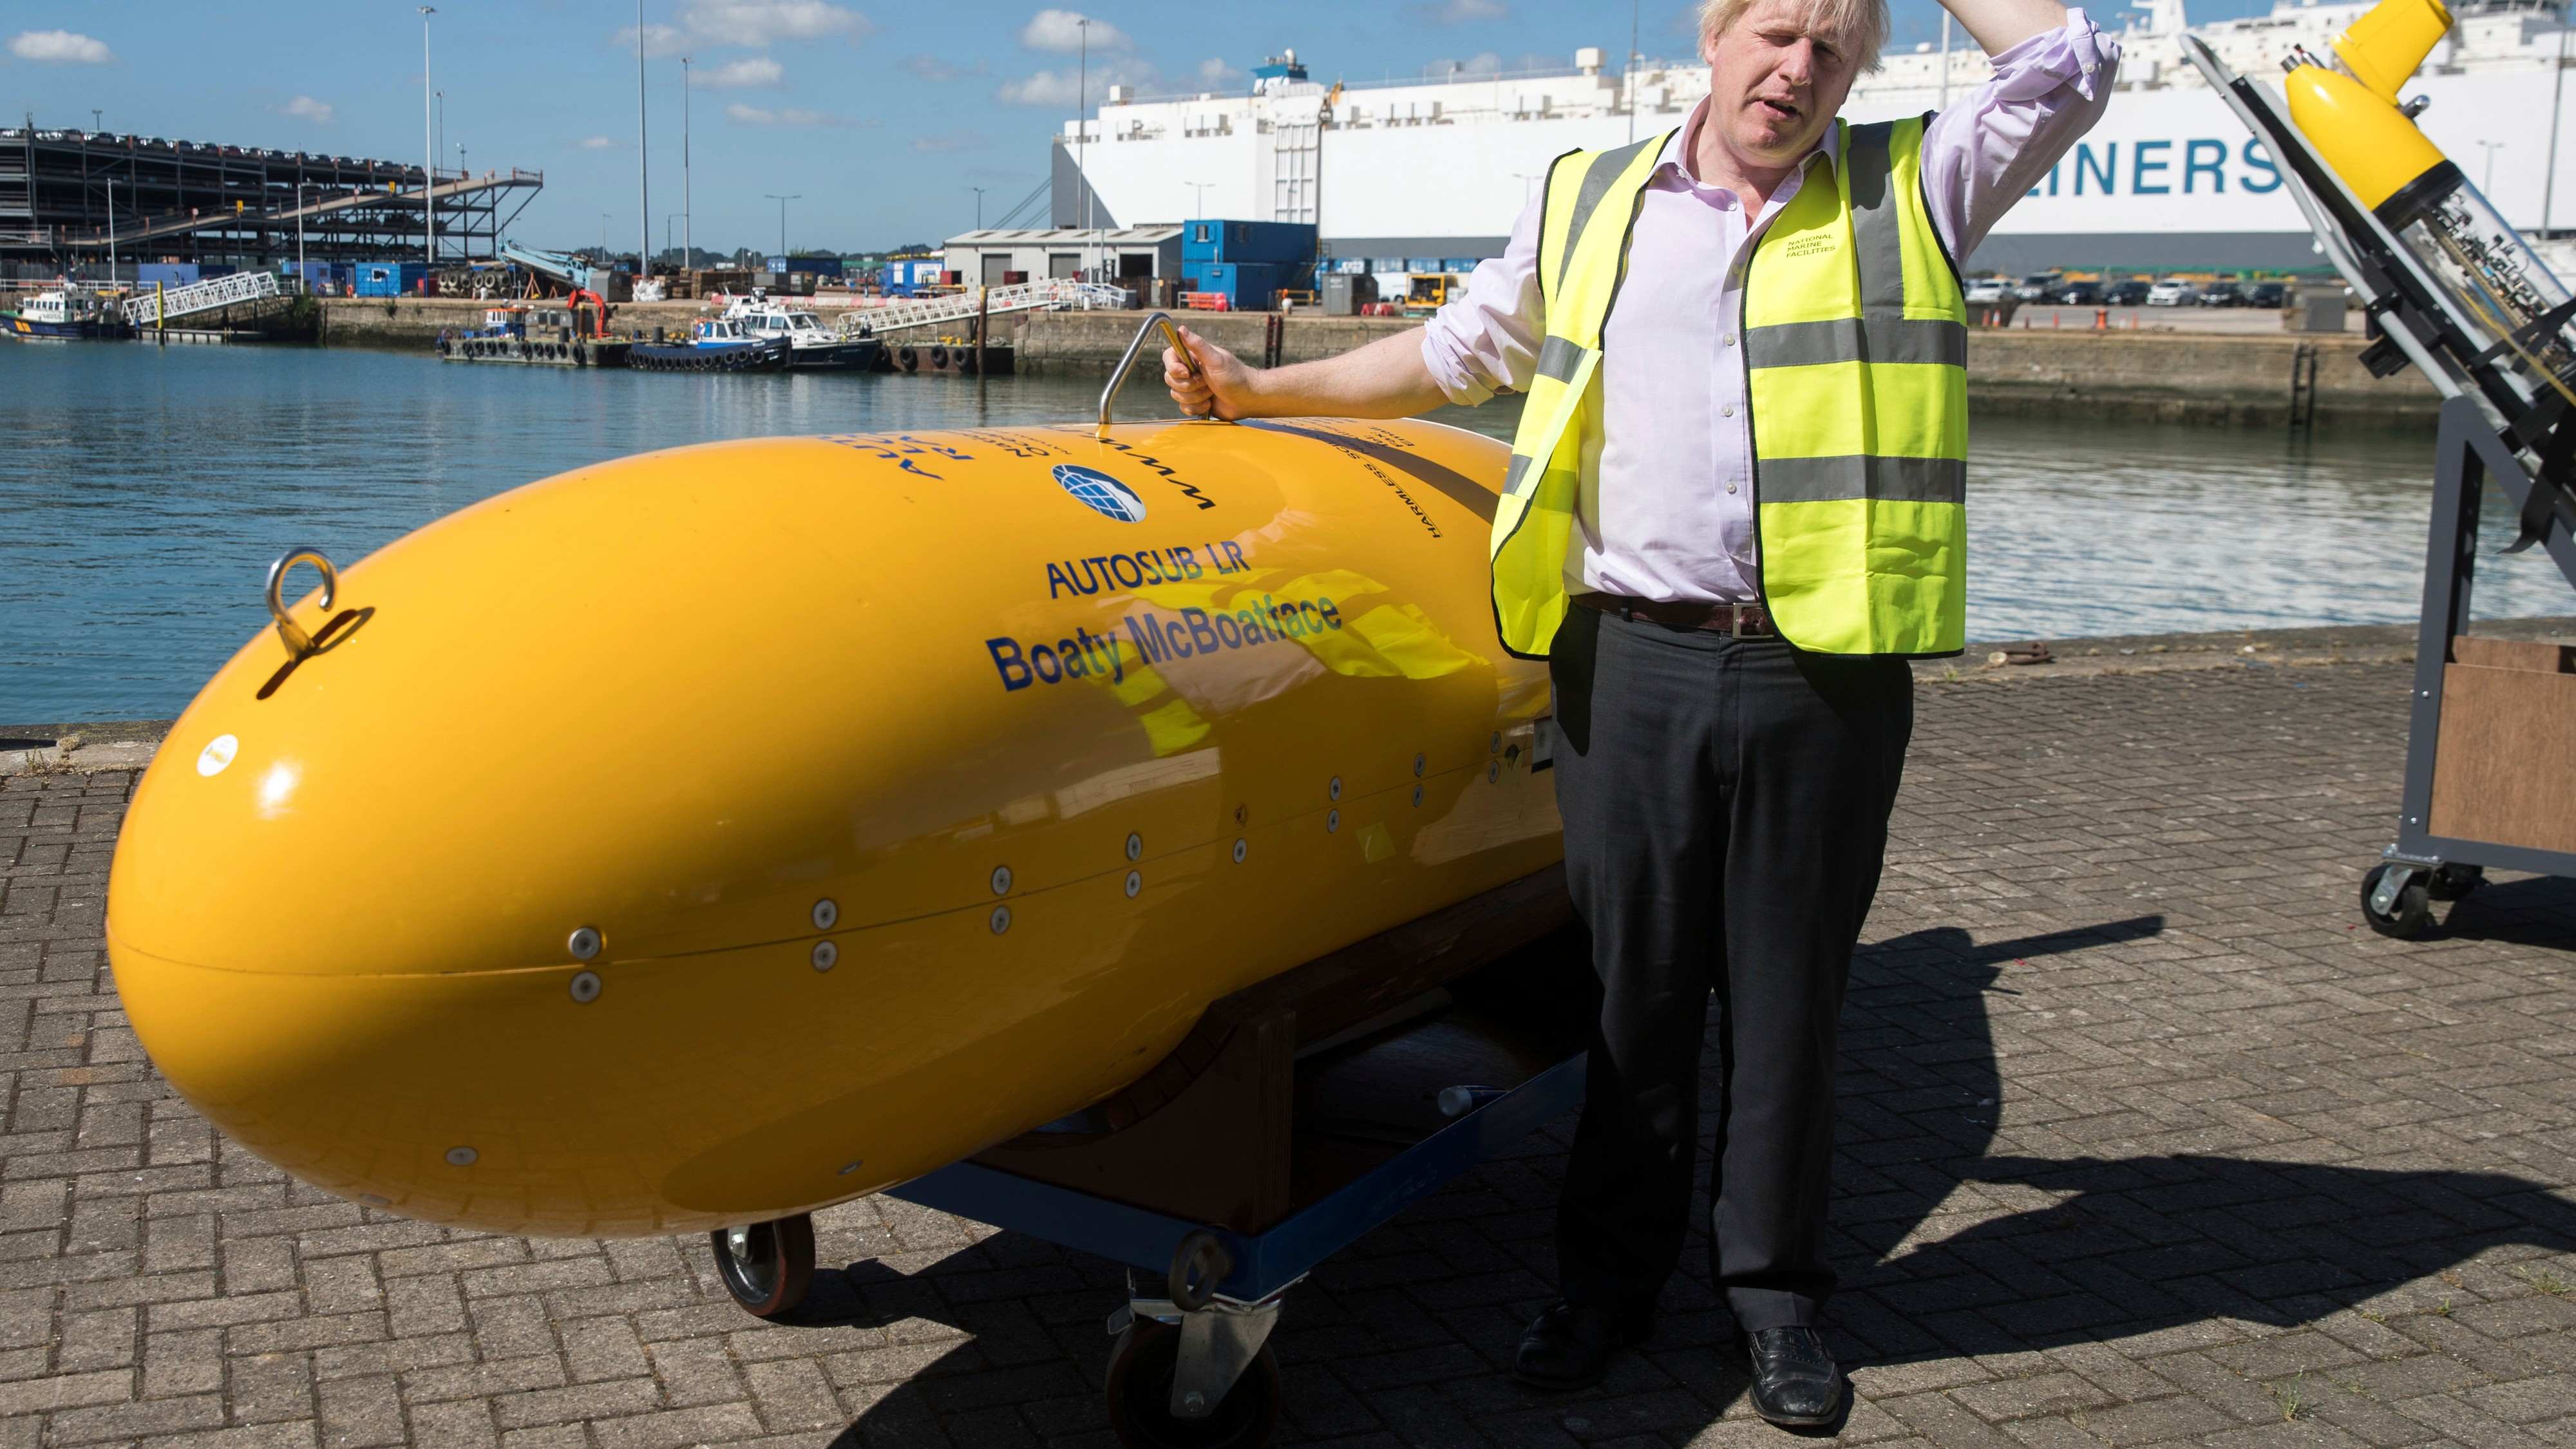 Boaty McBoatface Just Made a Big Scientific Discovery